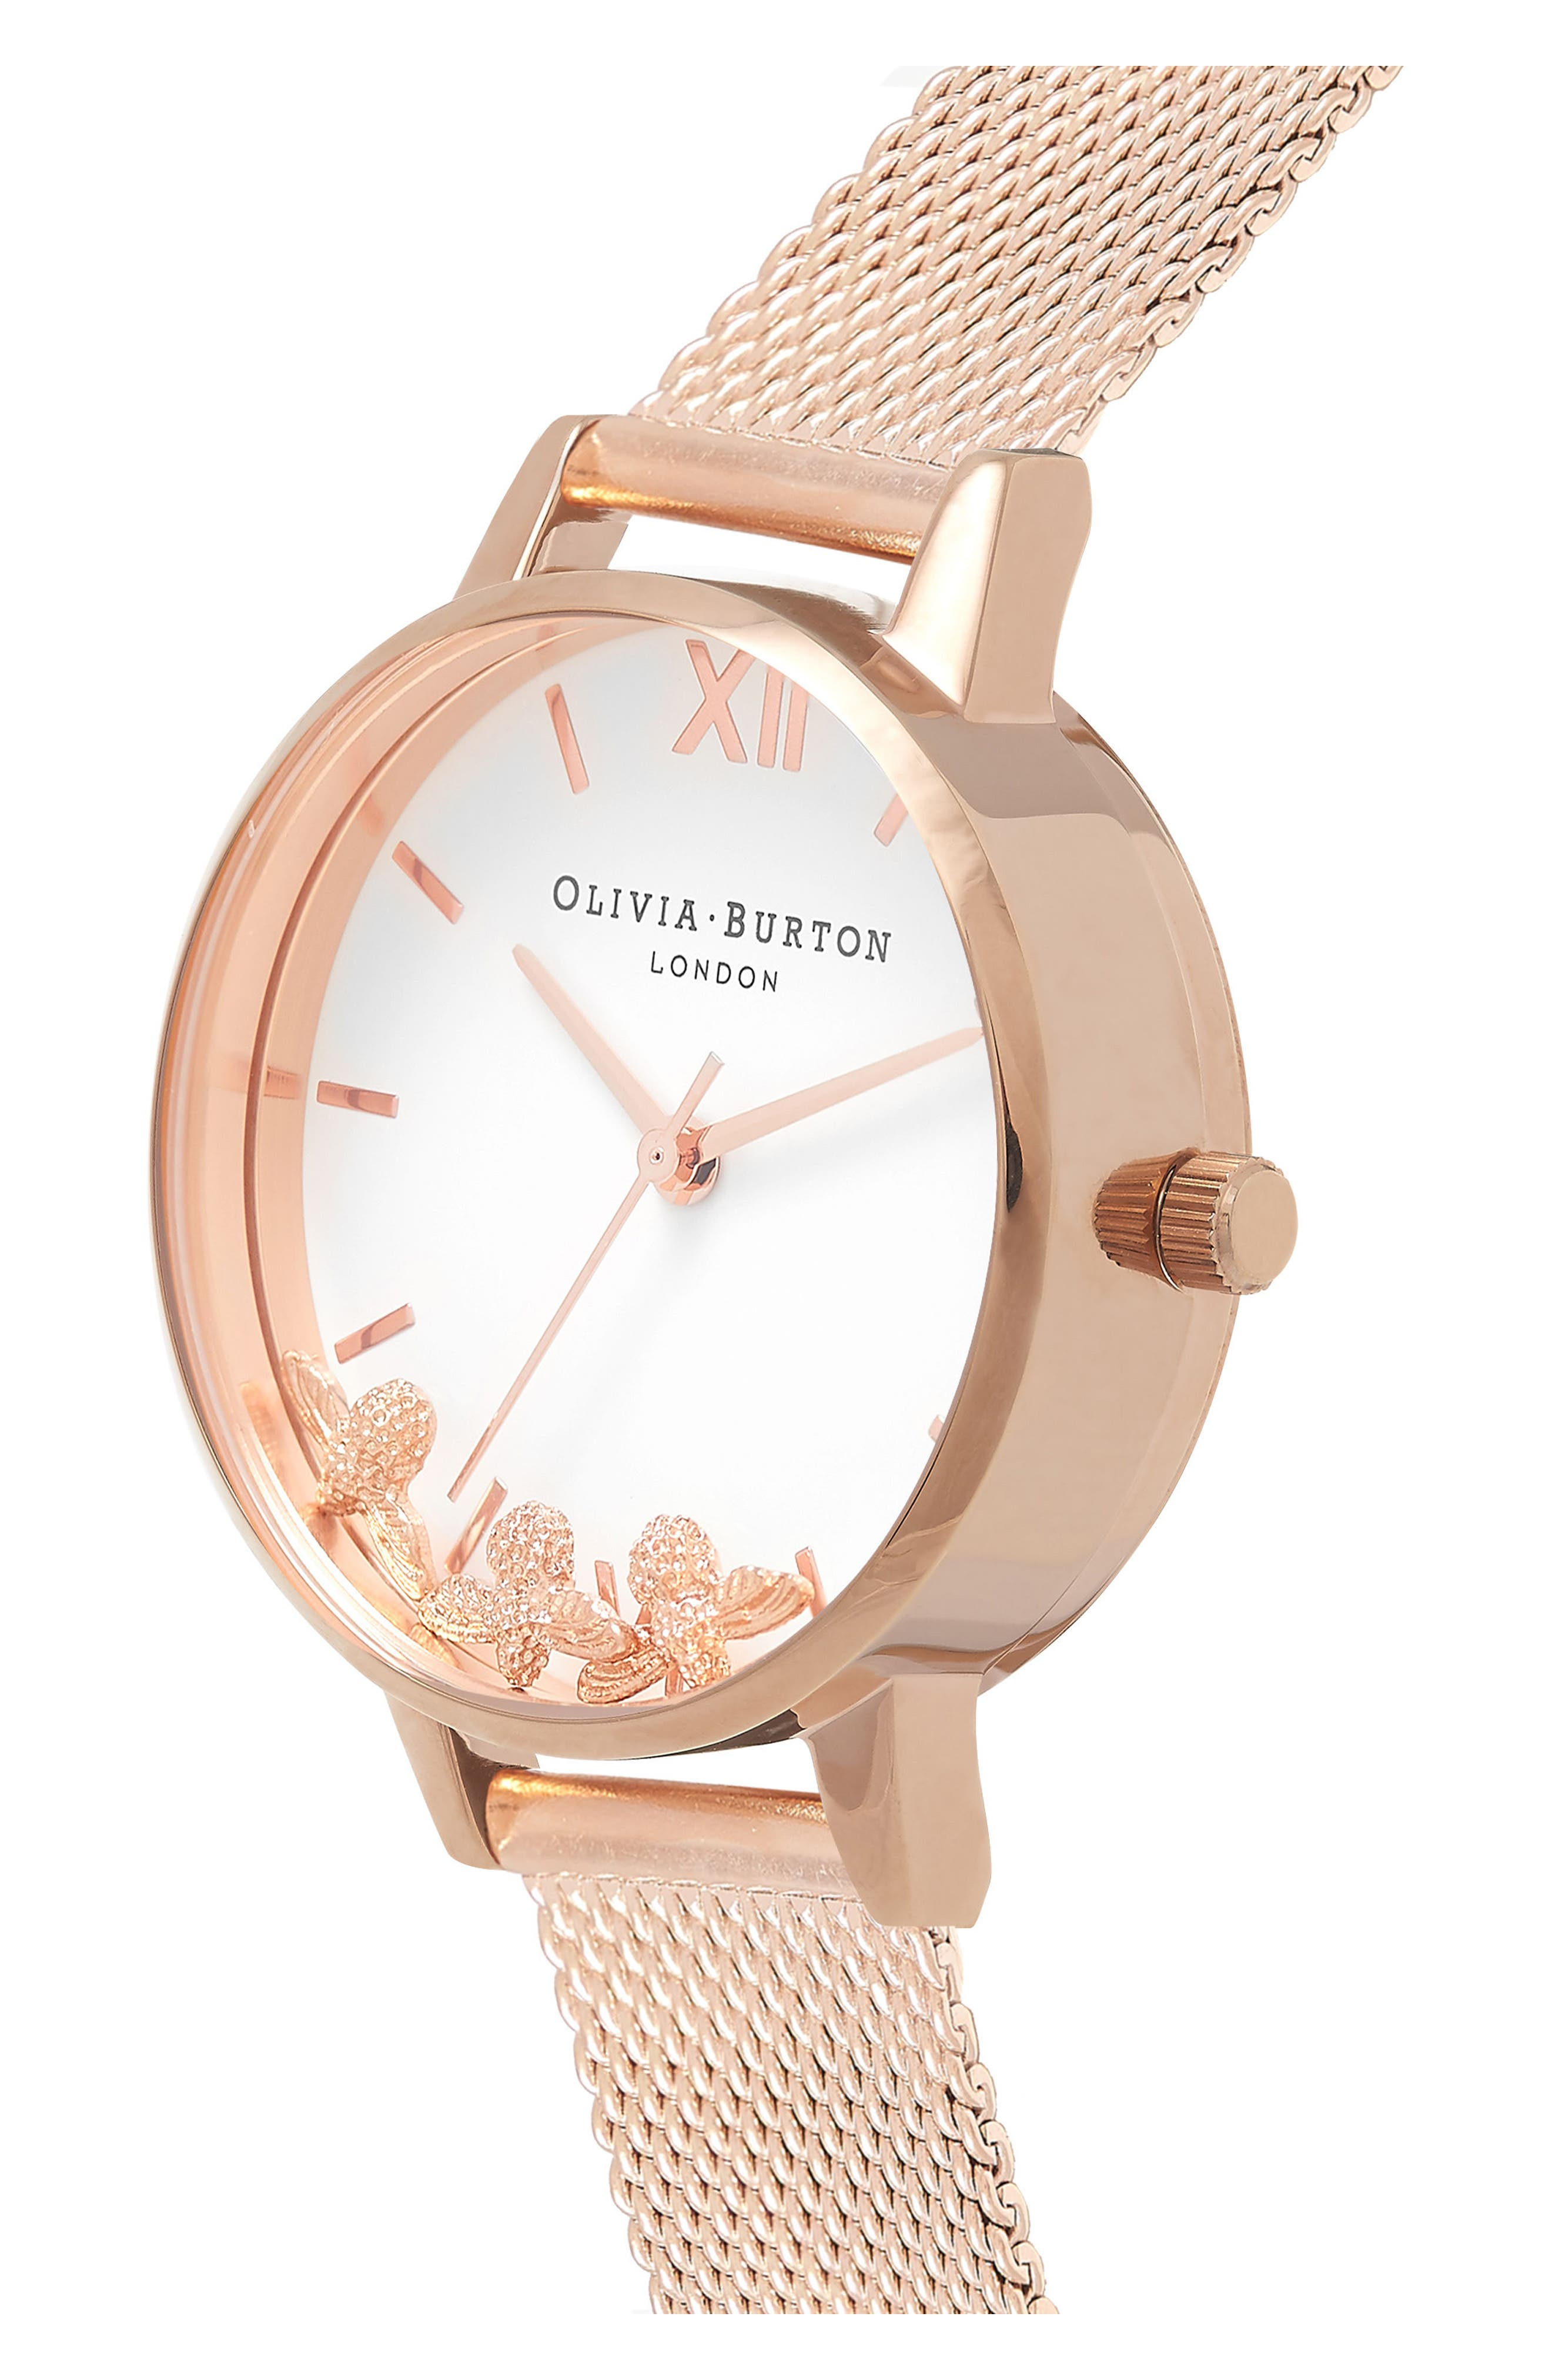 Busy Bees Mesh Strap Watch, 30mm,                             Alternate thumbnail 3, color,                             Rose Gold/ White/ Rose Gold